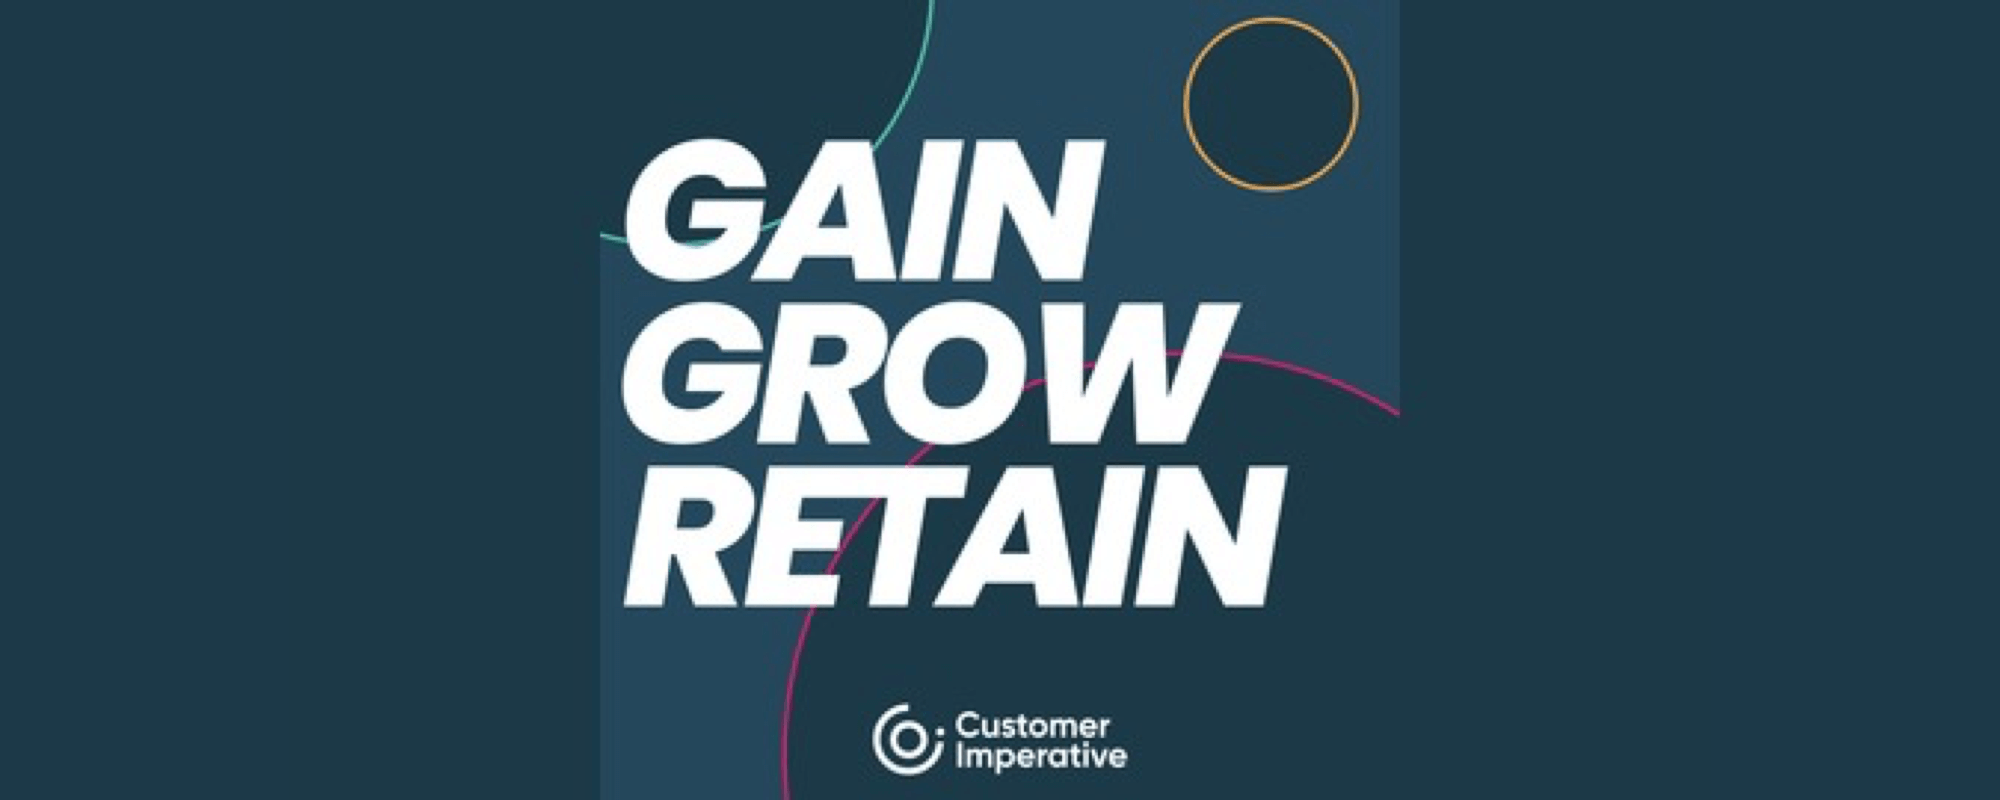 gain-grow-retain-podcast